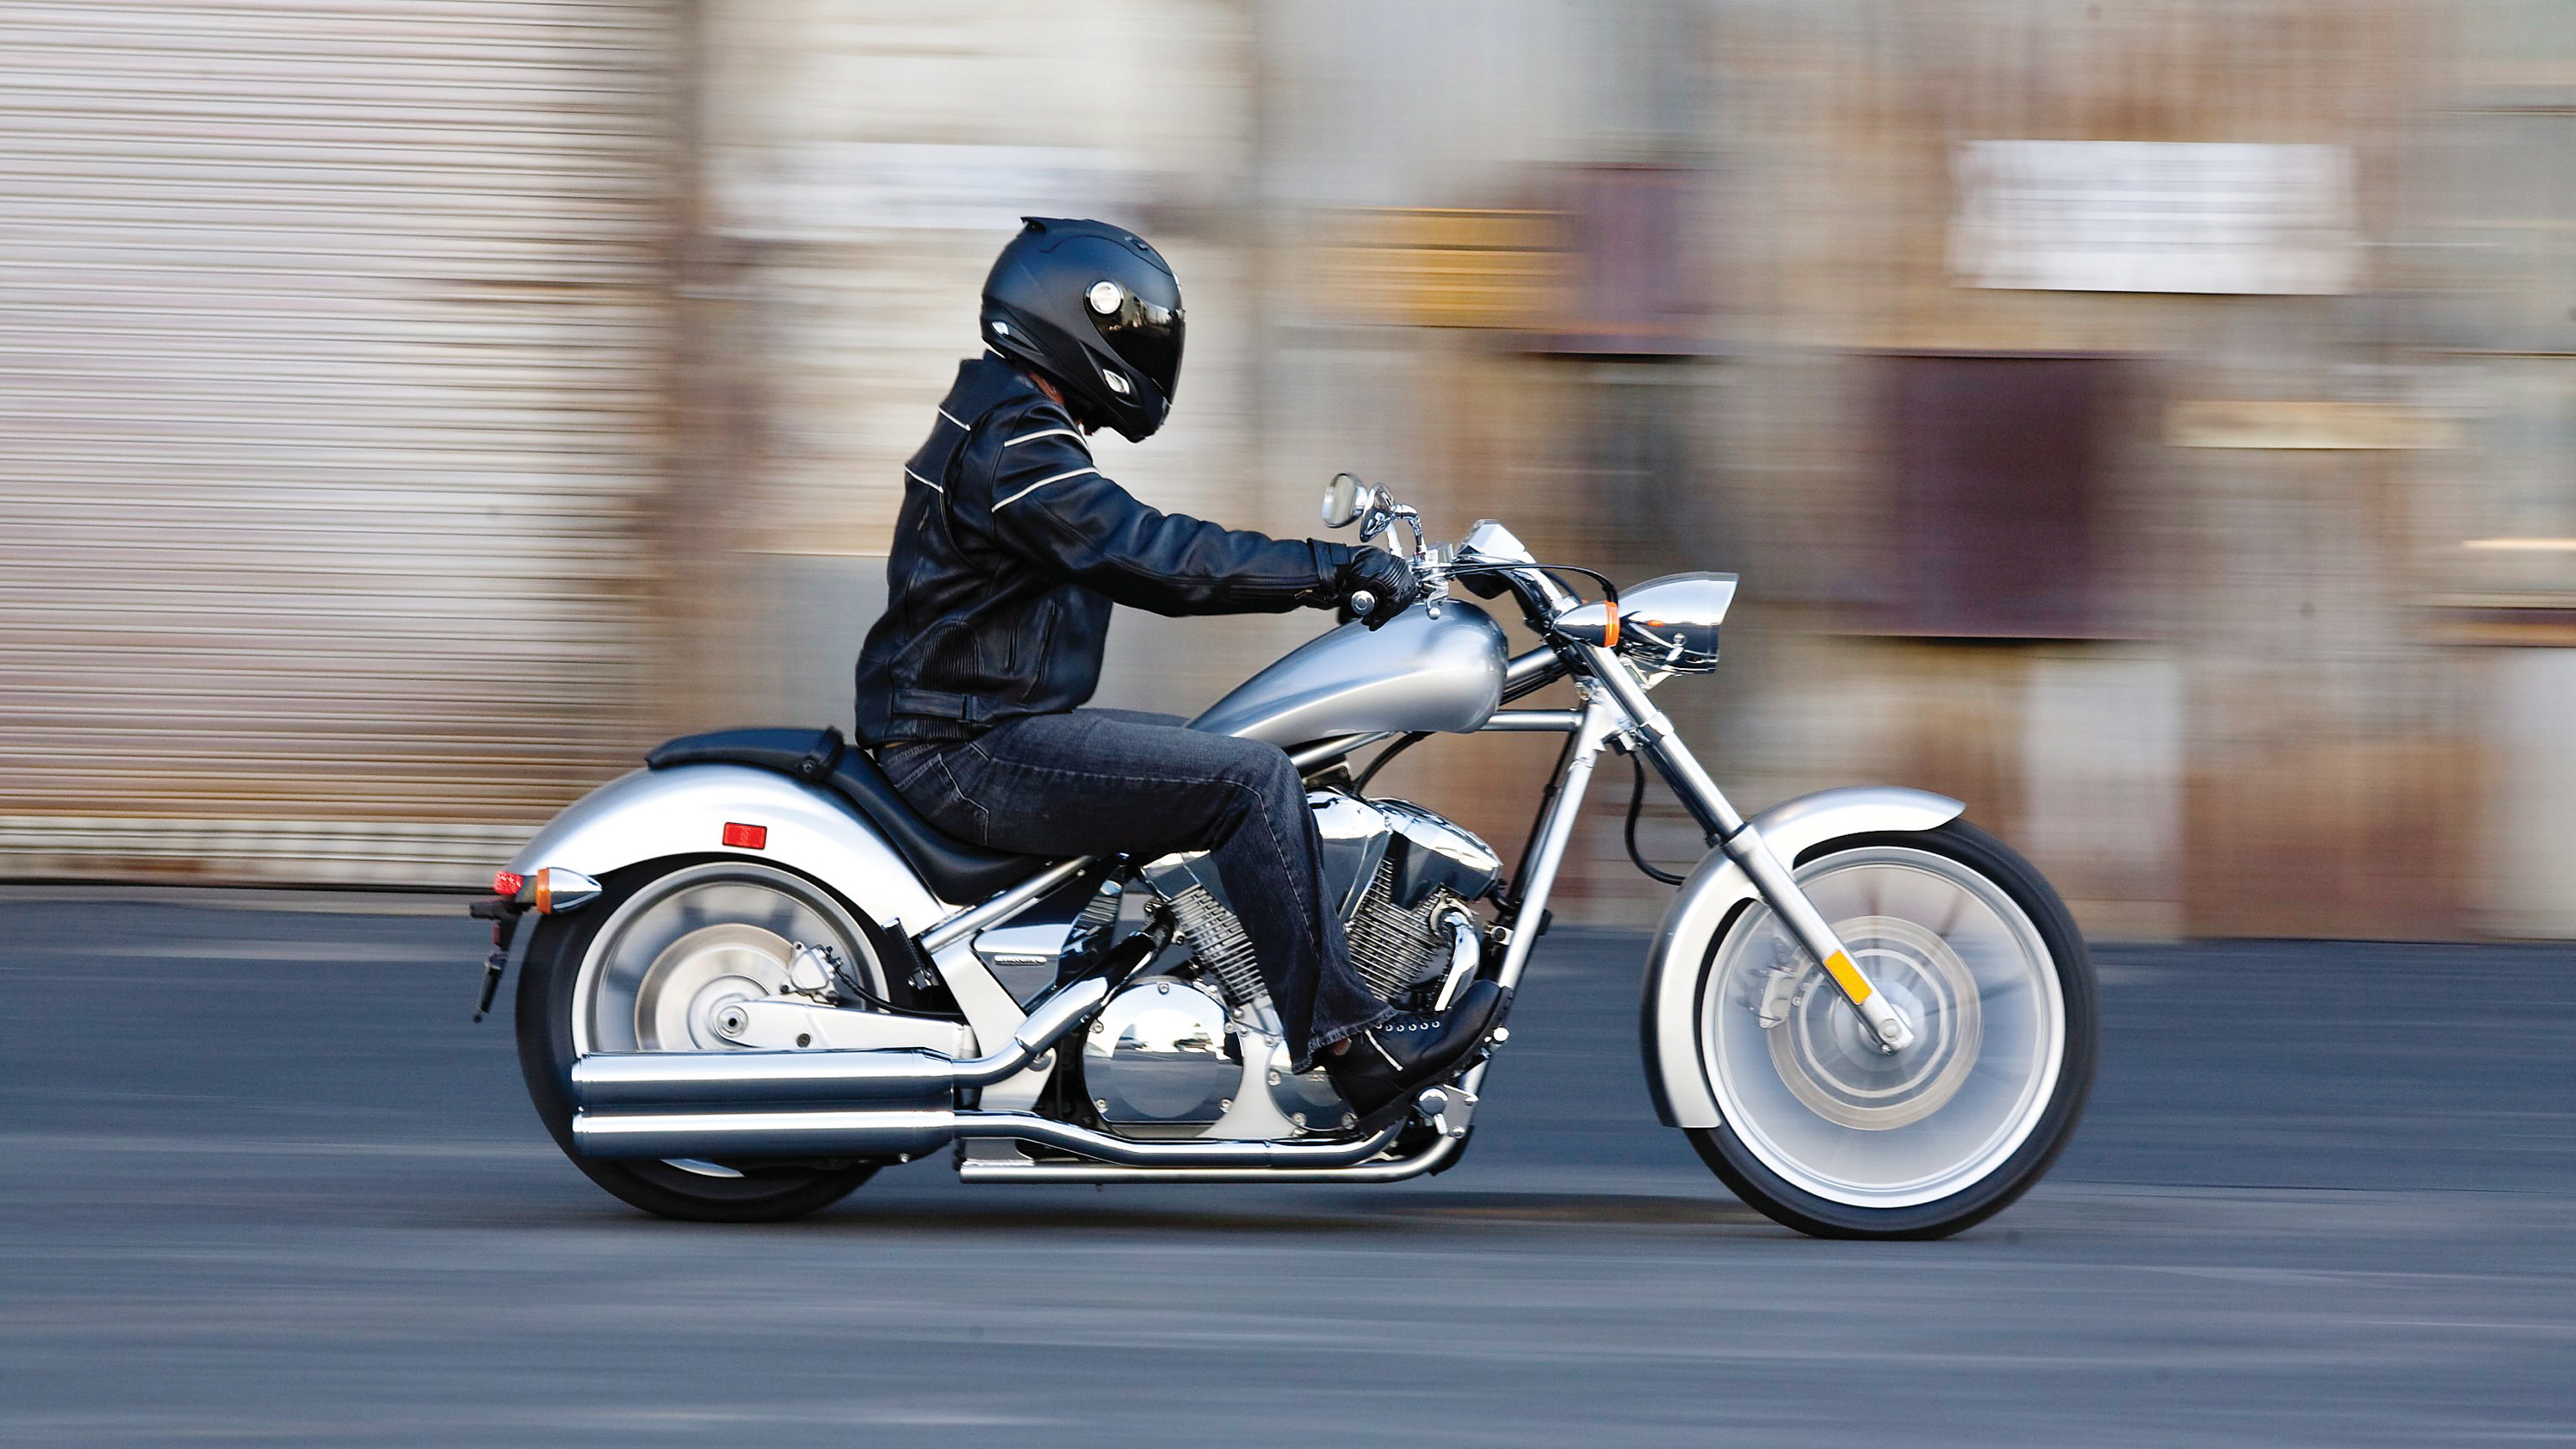 Honda Fury News And Reviews | Top Speed